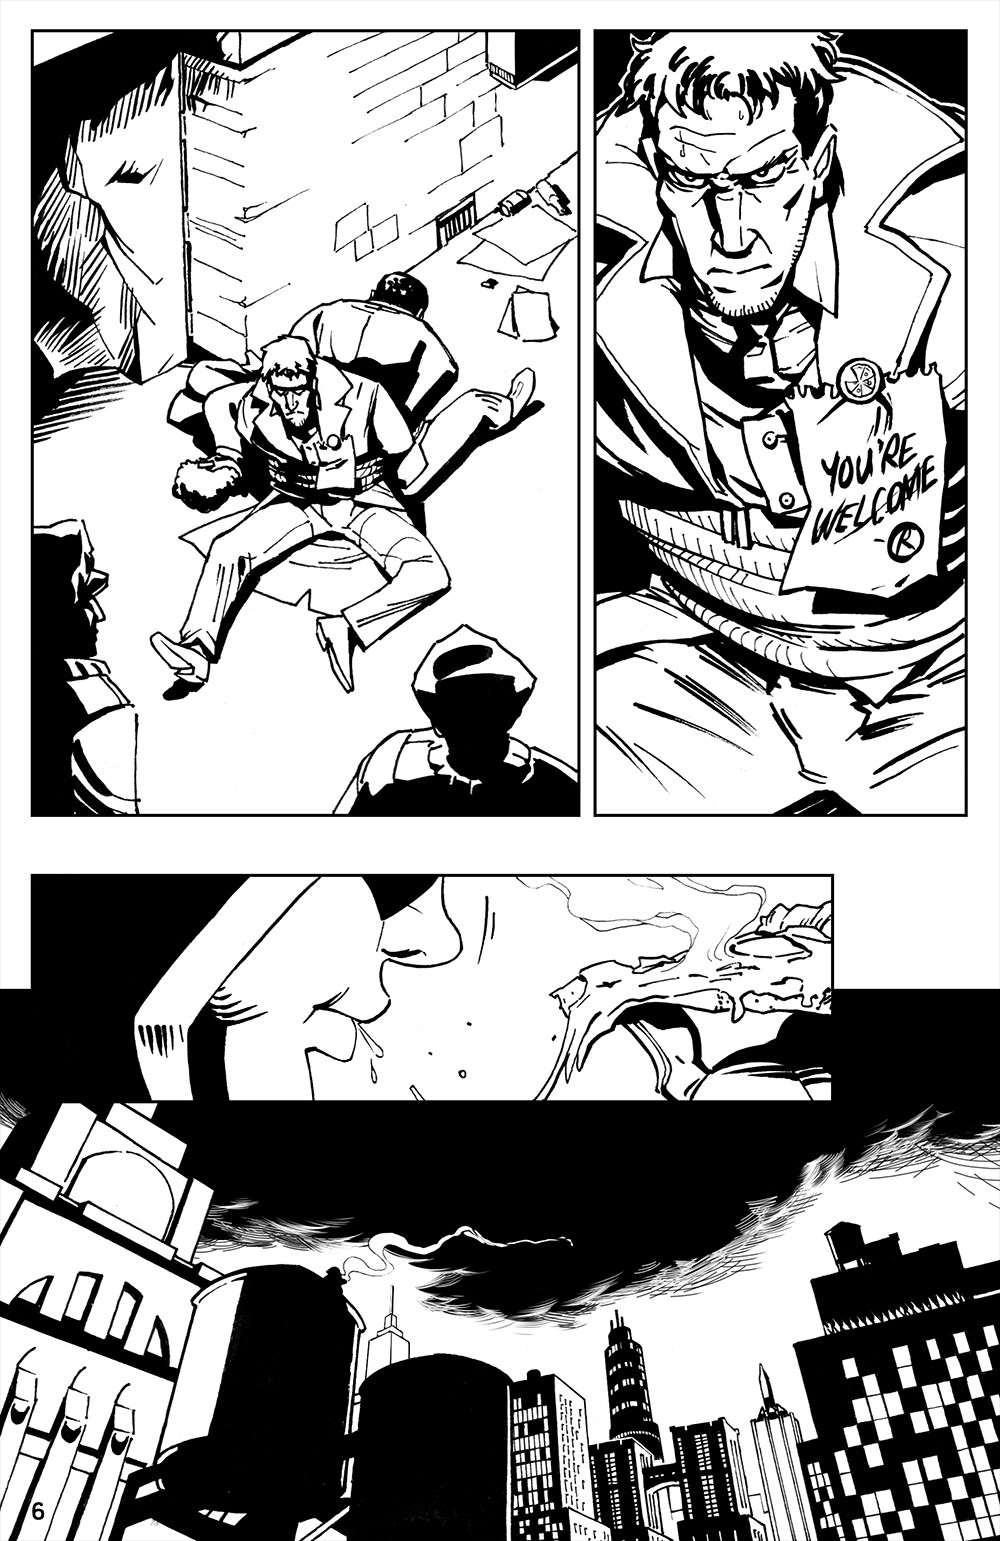 Guillaume poitel page6